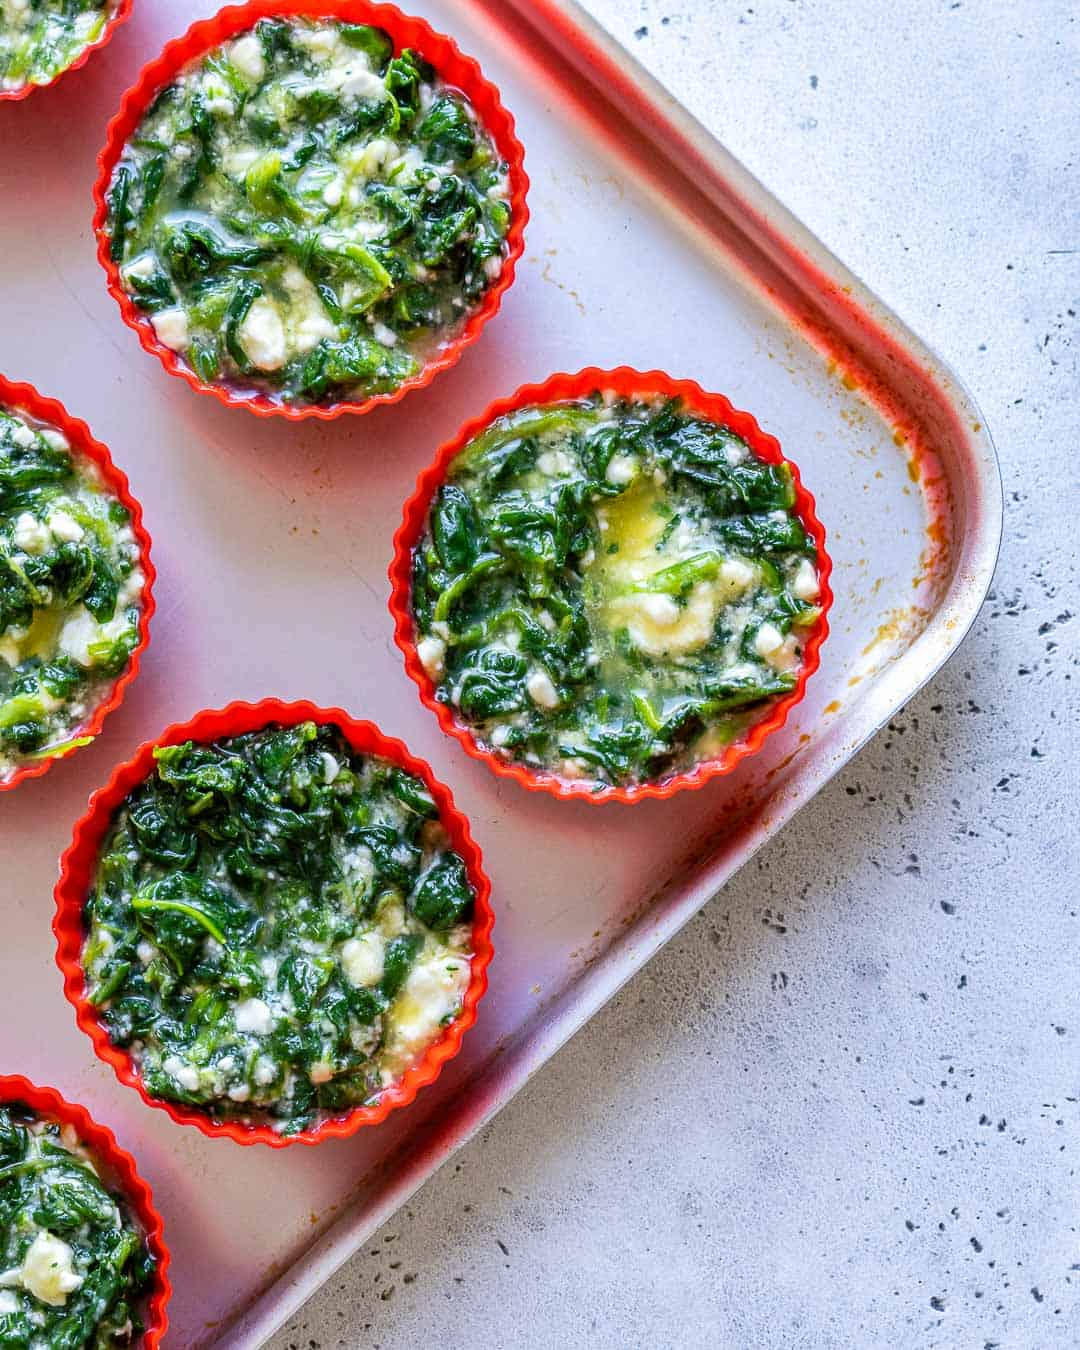 Muffin tin lined and filled with egg mixture.